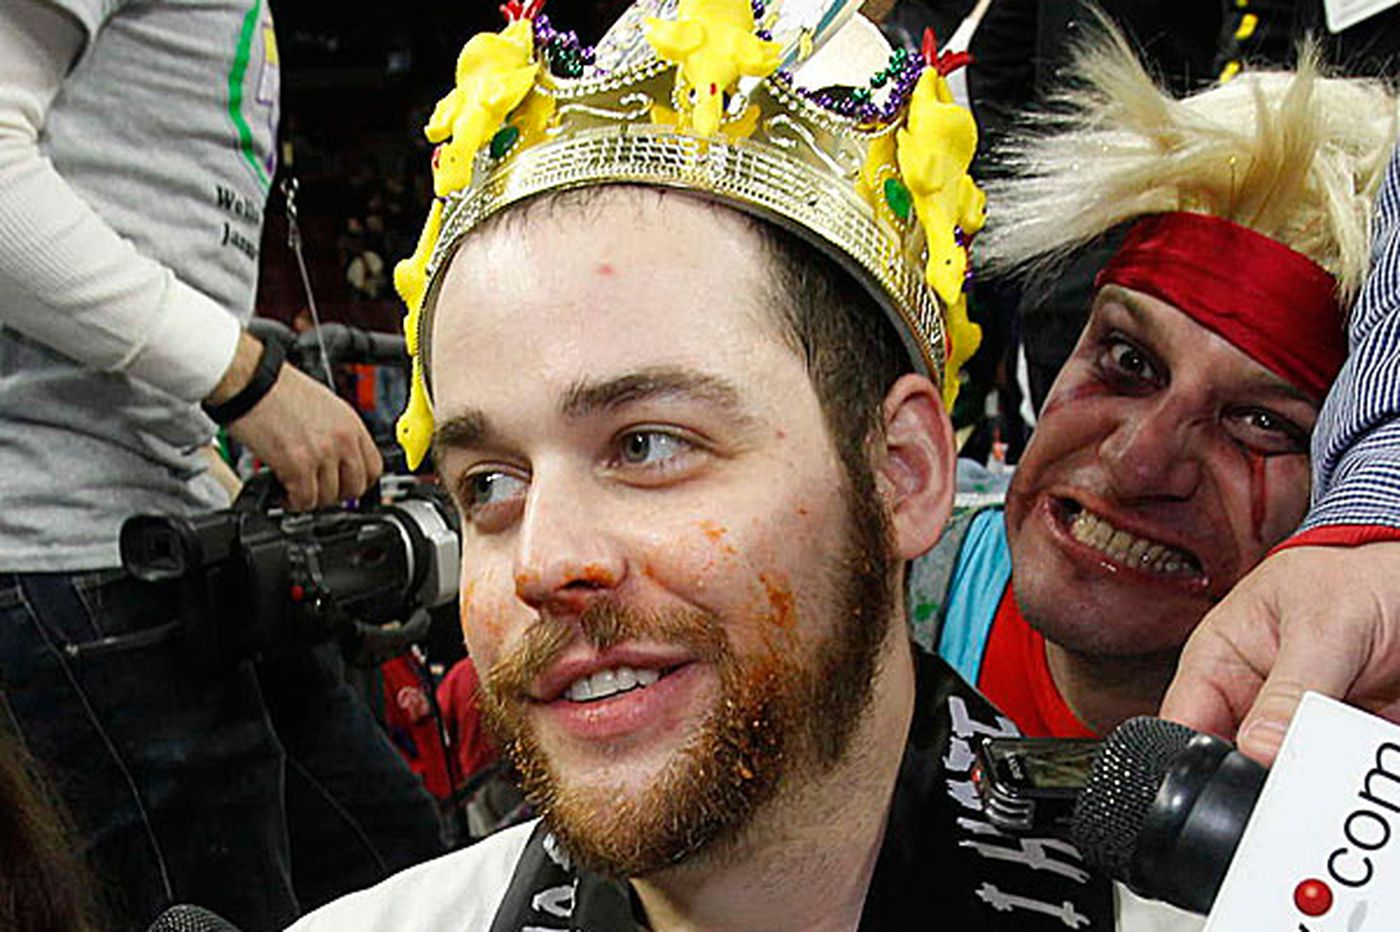 Sideshow: Wing Bowl: Upstart Bertoletti gobbles up title in upset